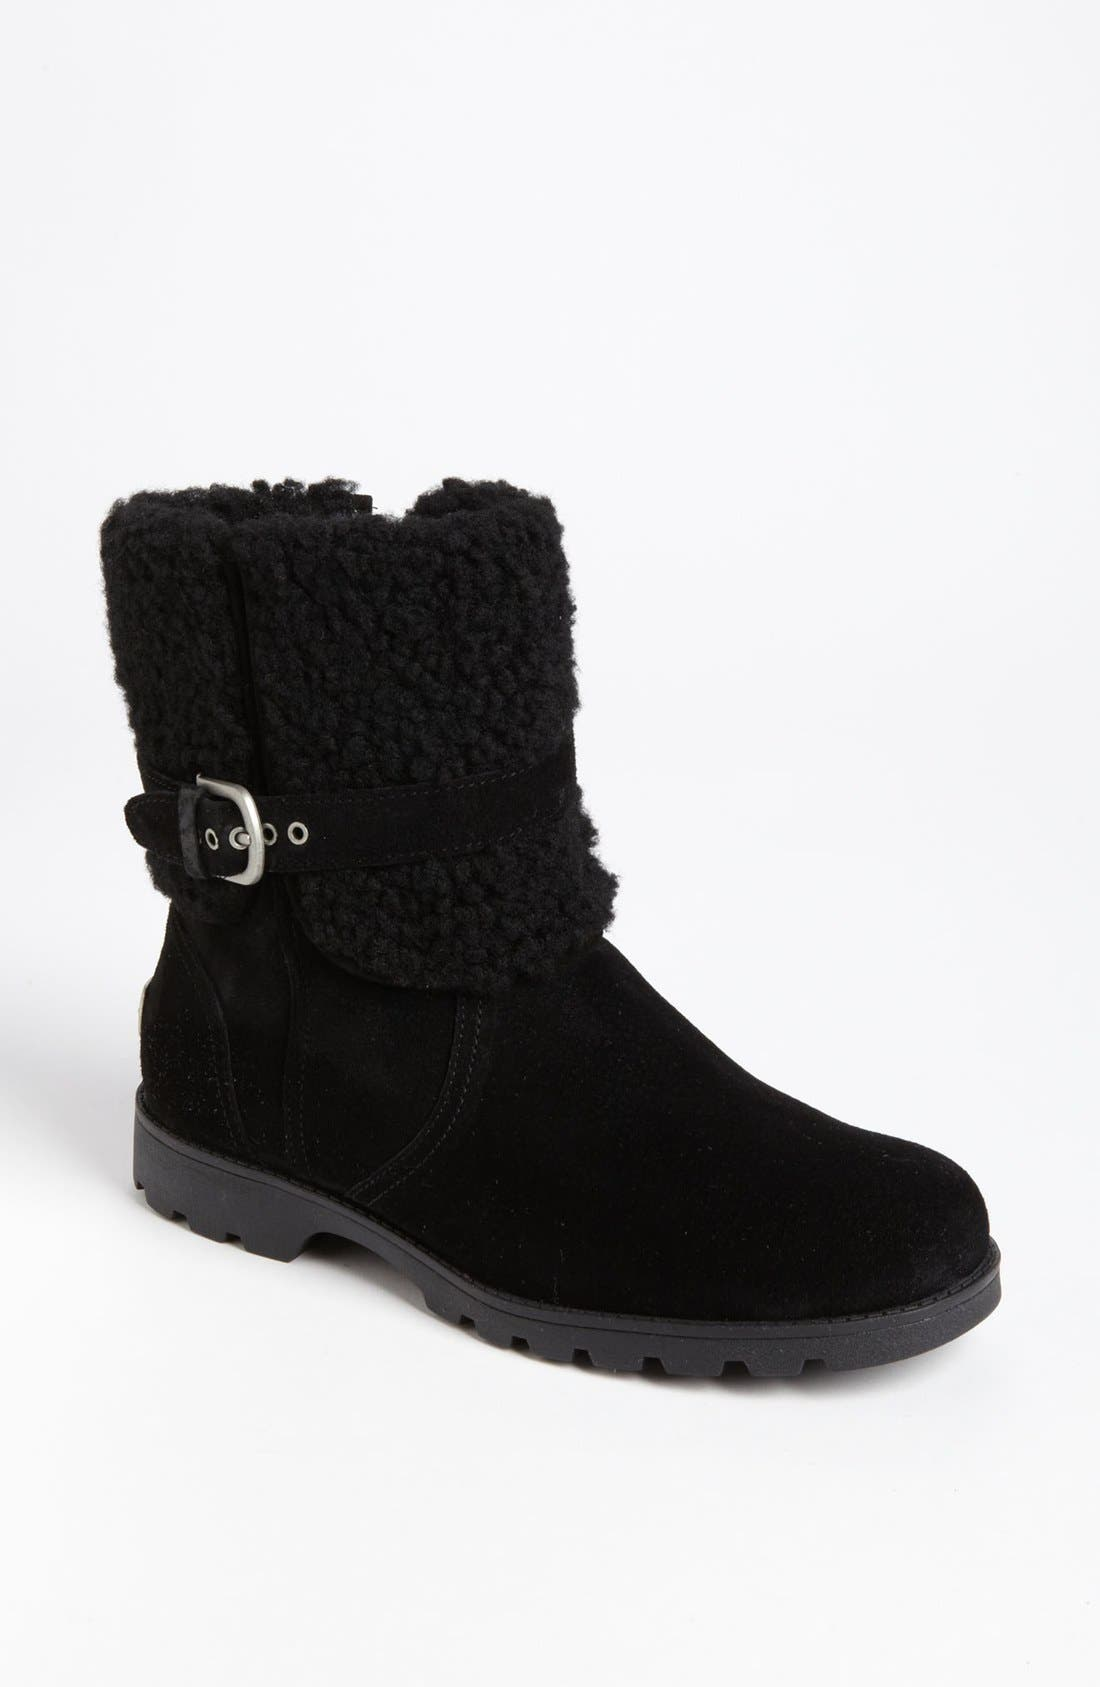 Alternate Image 1 Selected - UGG® Australia 'Blayre' Boot (Women)